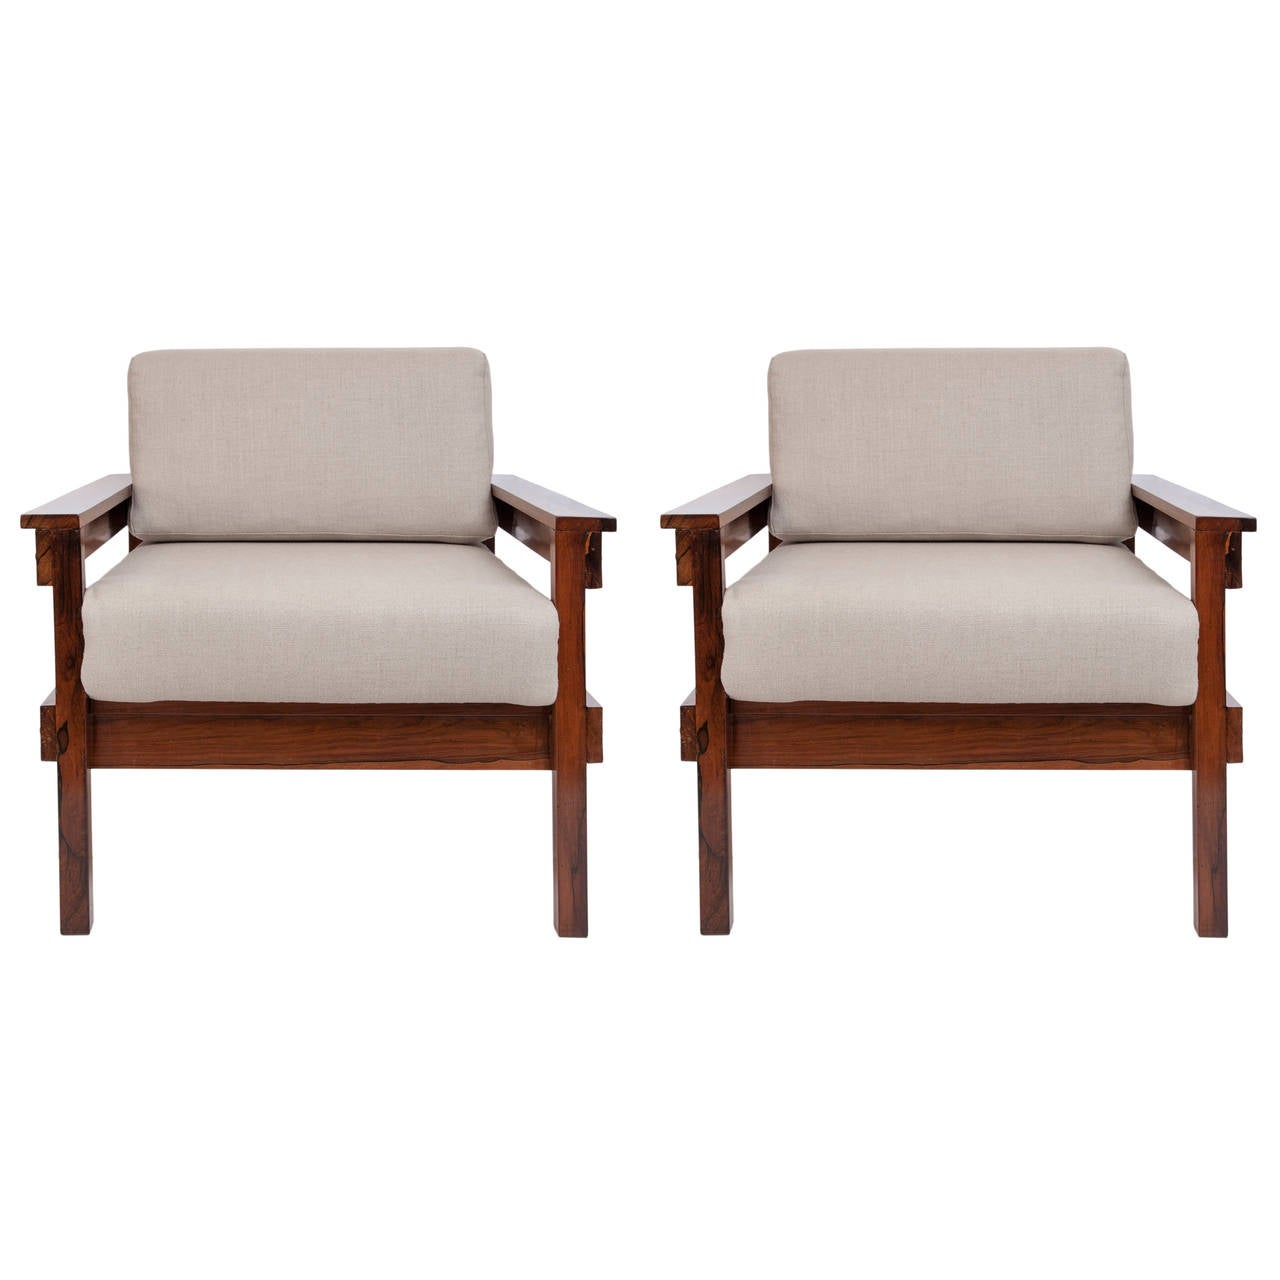 A vintage pair of lounge armchairs, produced circa 1960's, with Brazilian Jacaranda wood frames, cushioned back and seat upholstered in beige linen. Very good condition, consistent with age and use, recently reupholstered.